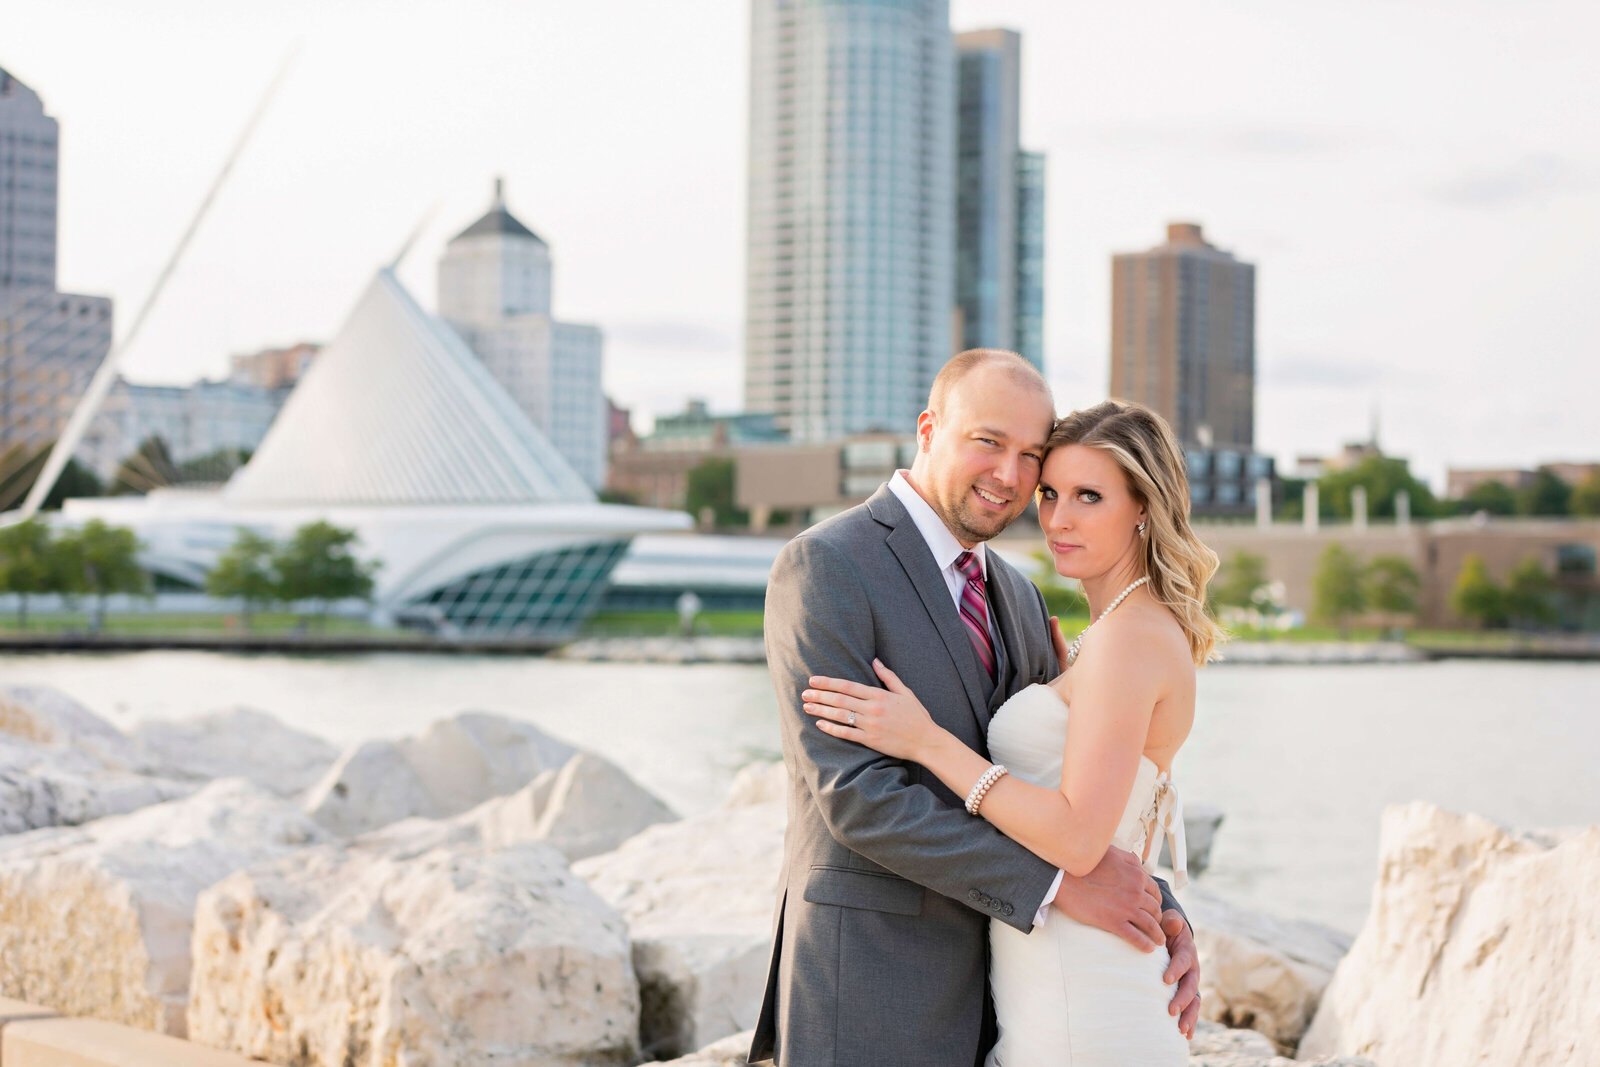 Wedding-Photographer-Discovery-World-Milwaukee-Wisconsin-58